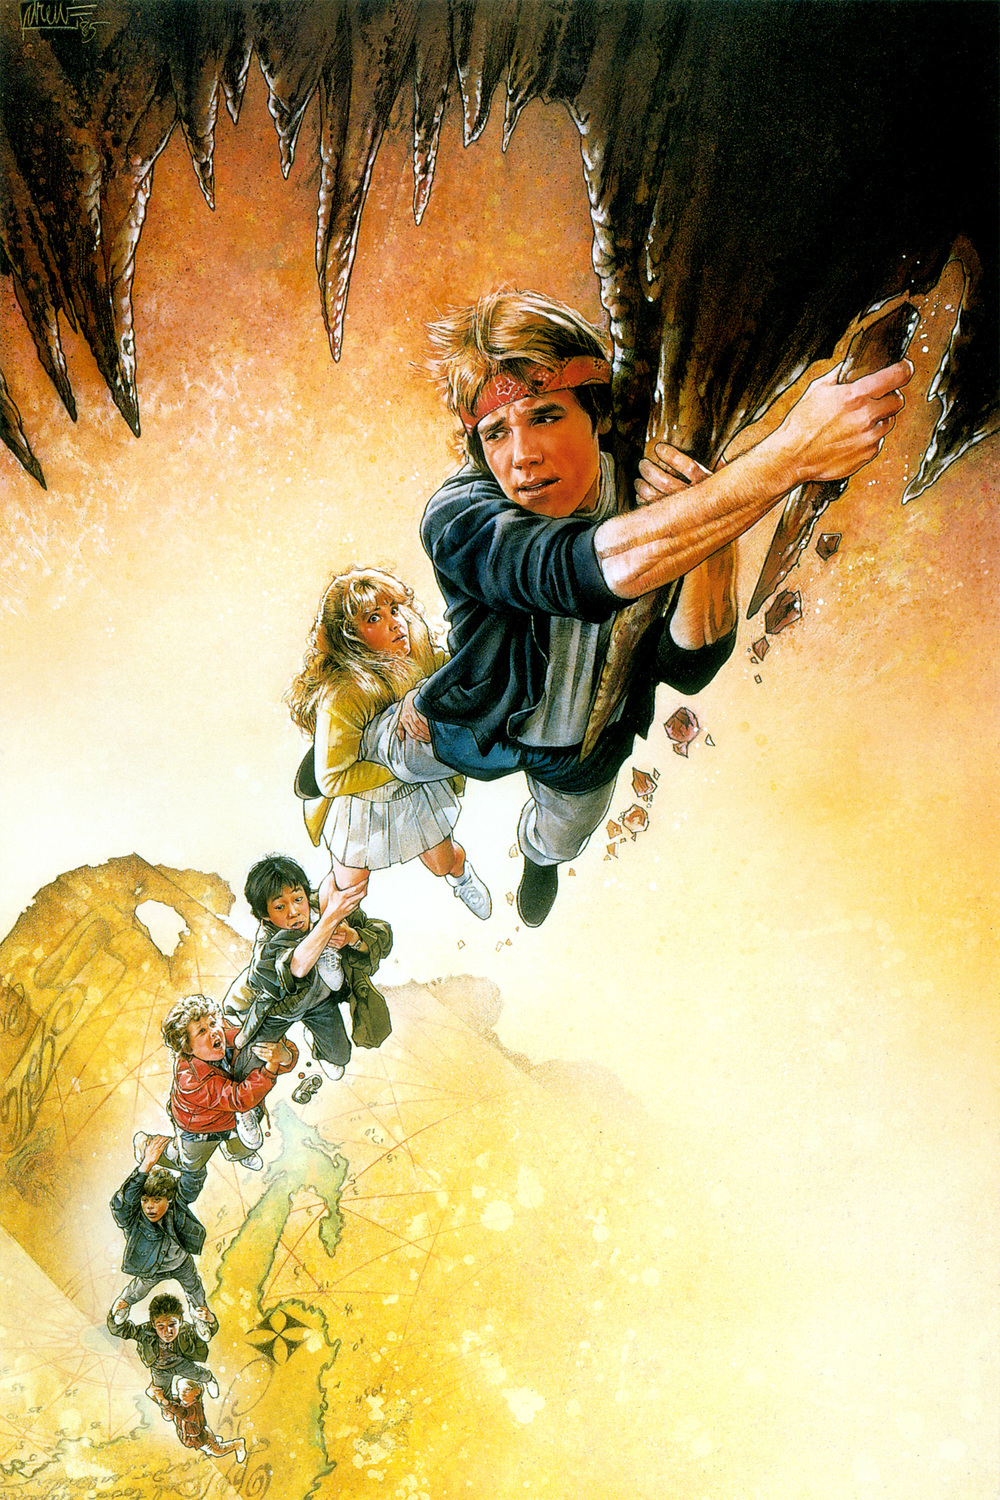 Los Goonies (1985) - Richard Donner